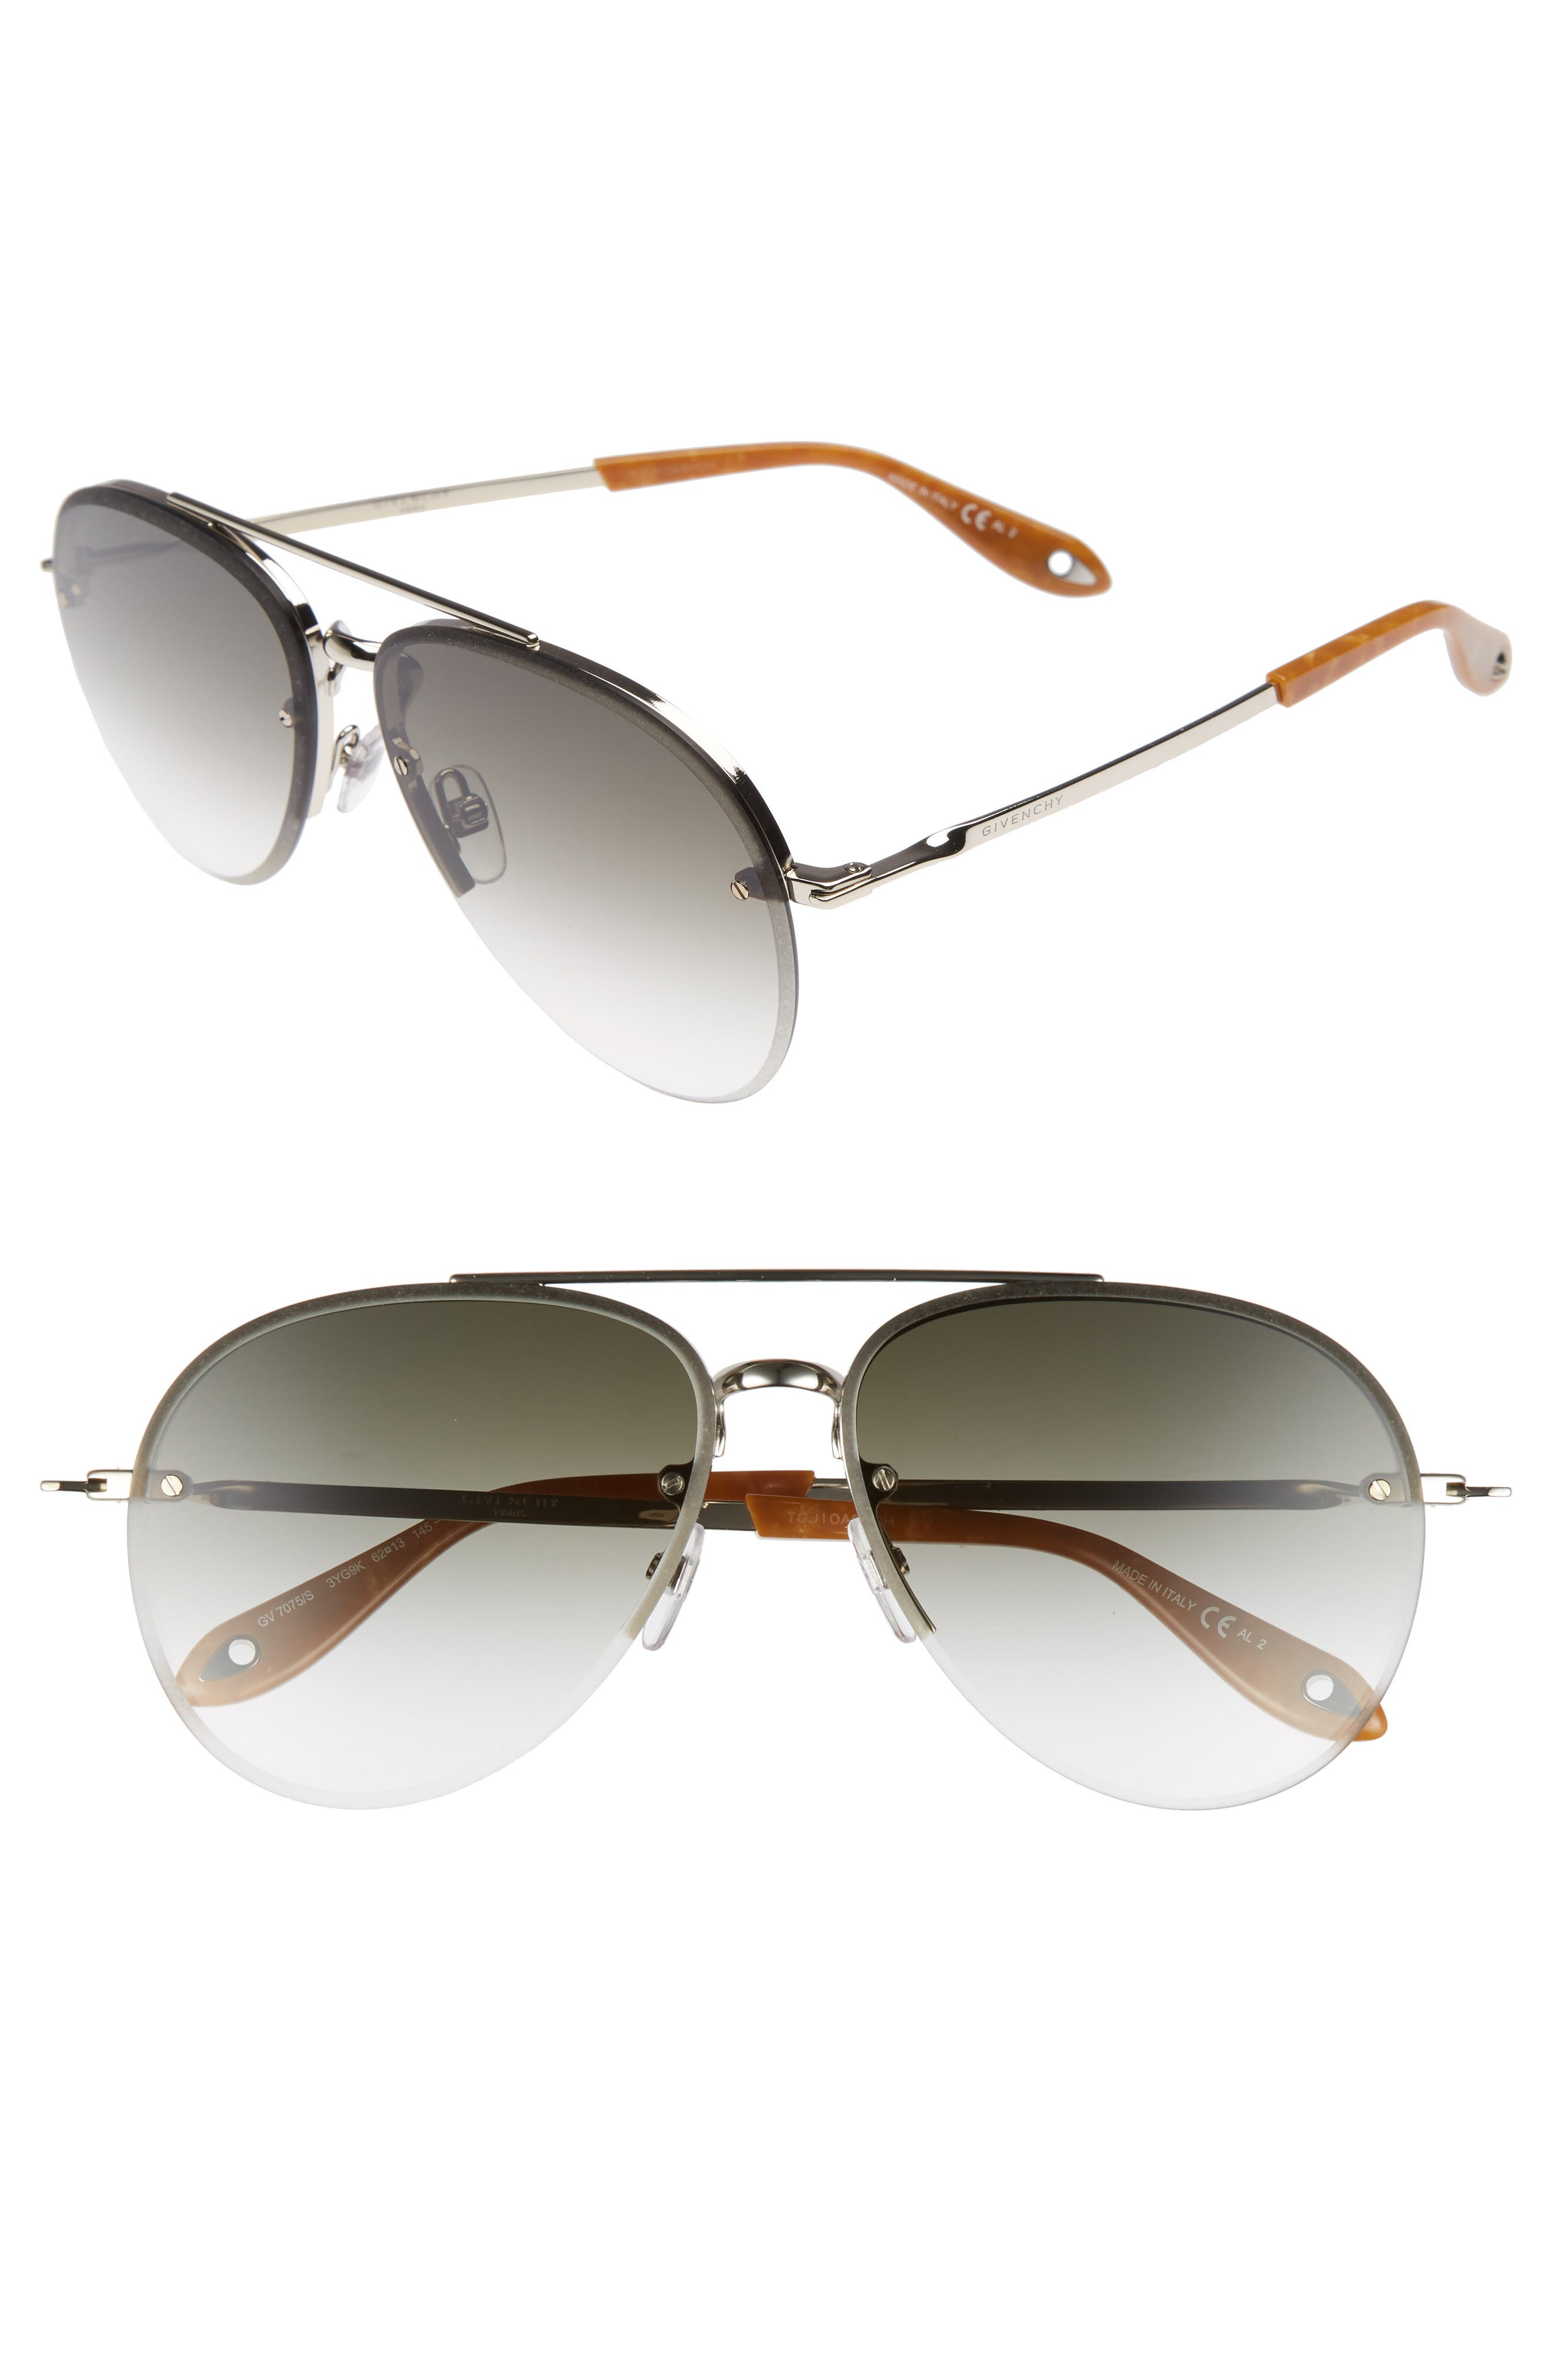 Givenchy 62mm Aviator Sunglasses